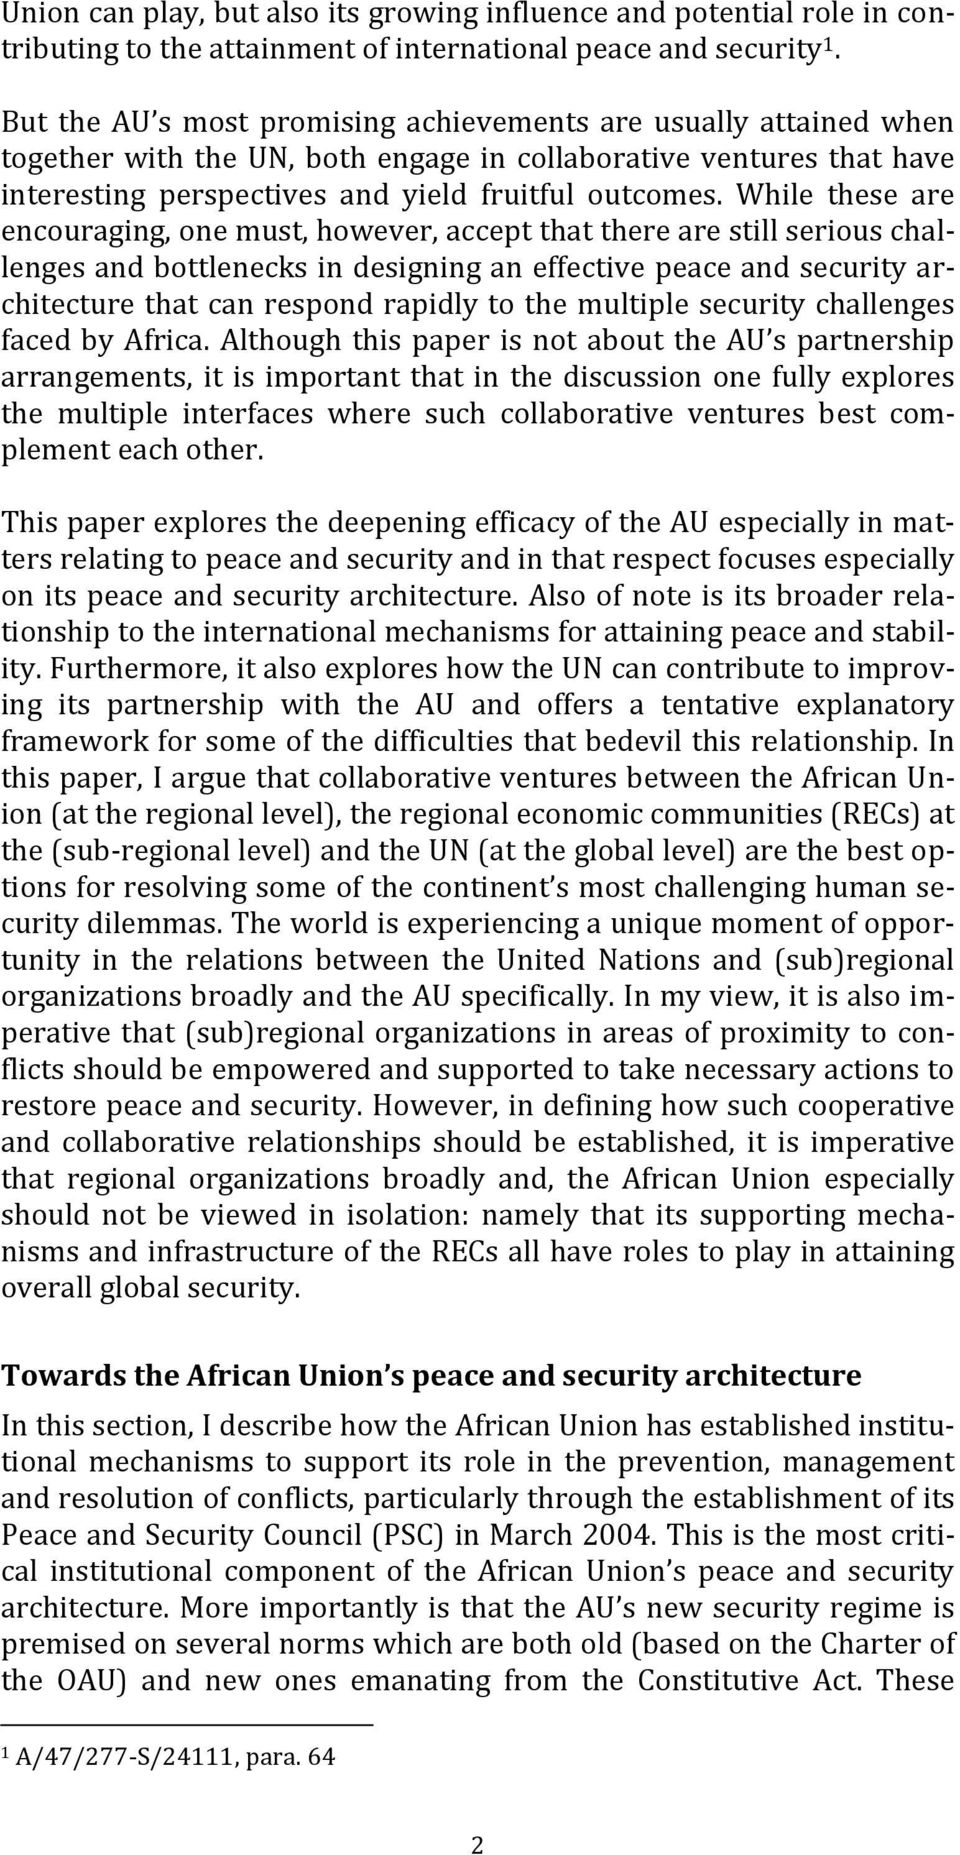 While these are encouraging, one must, however, accept that there are still serious challenges and bottlenecks in designing an effective peace and security architecture that can respond rapidly to